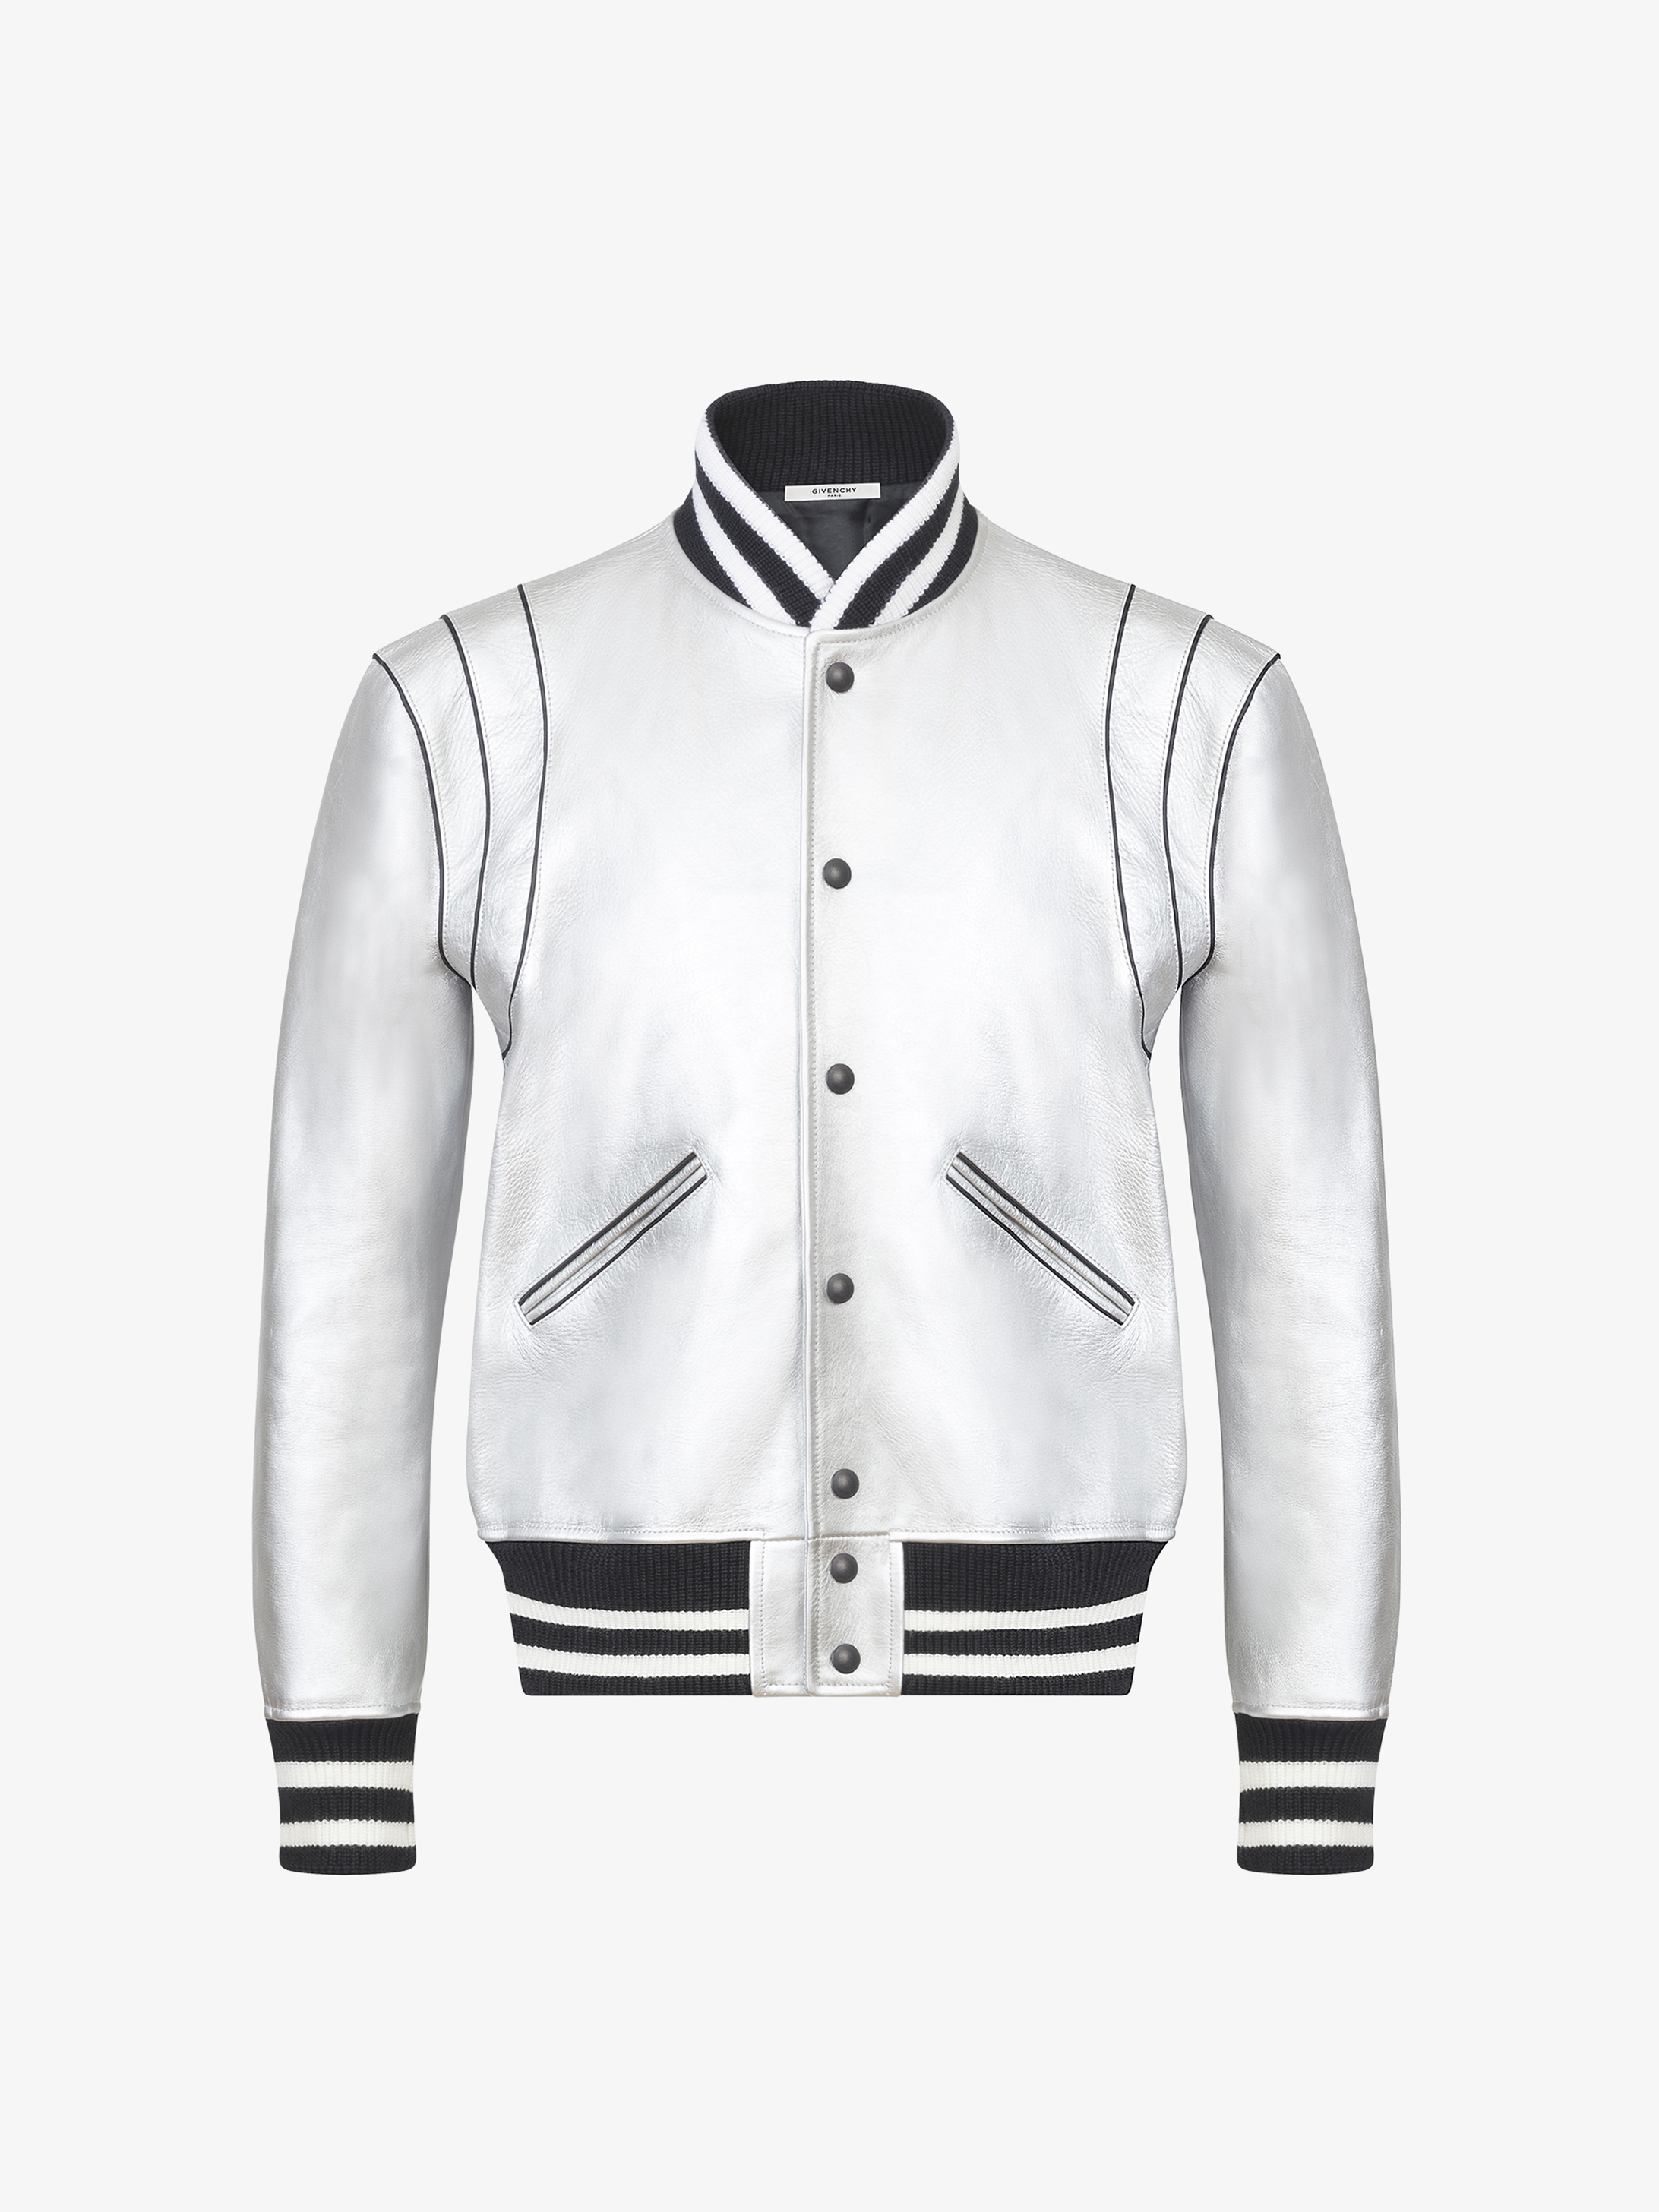 Silver bomber jacket in leather